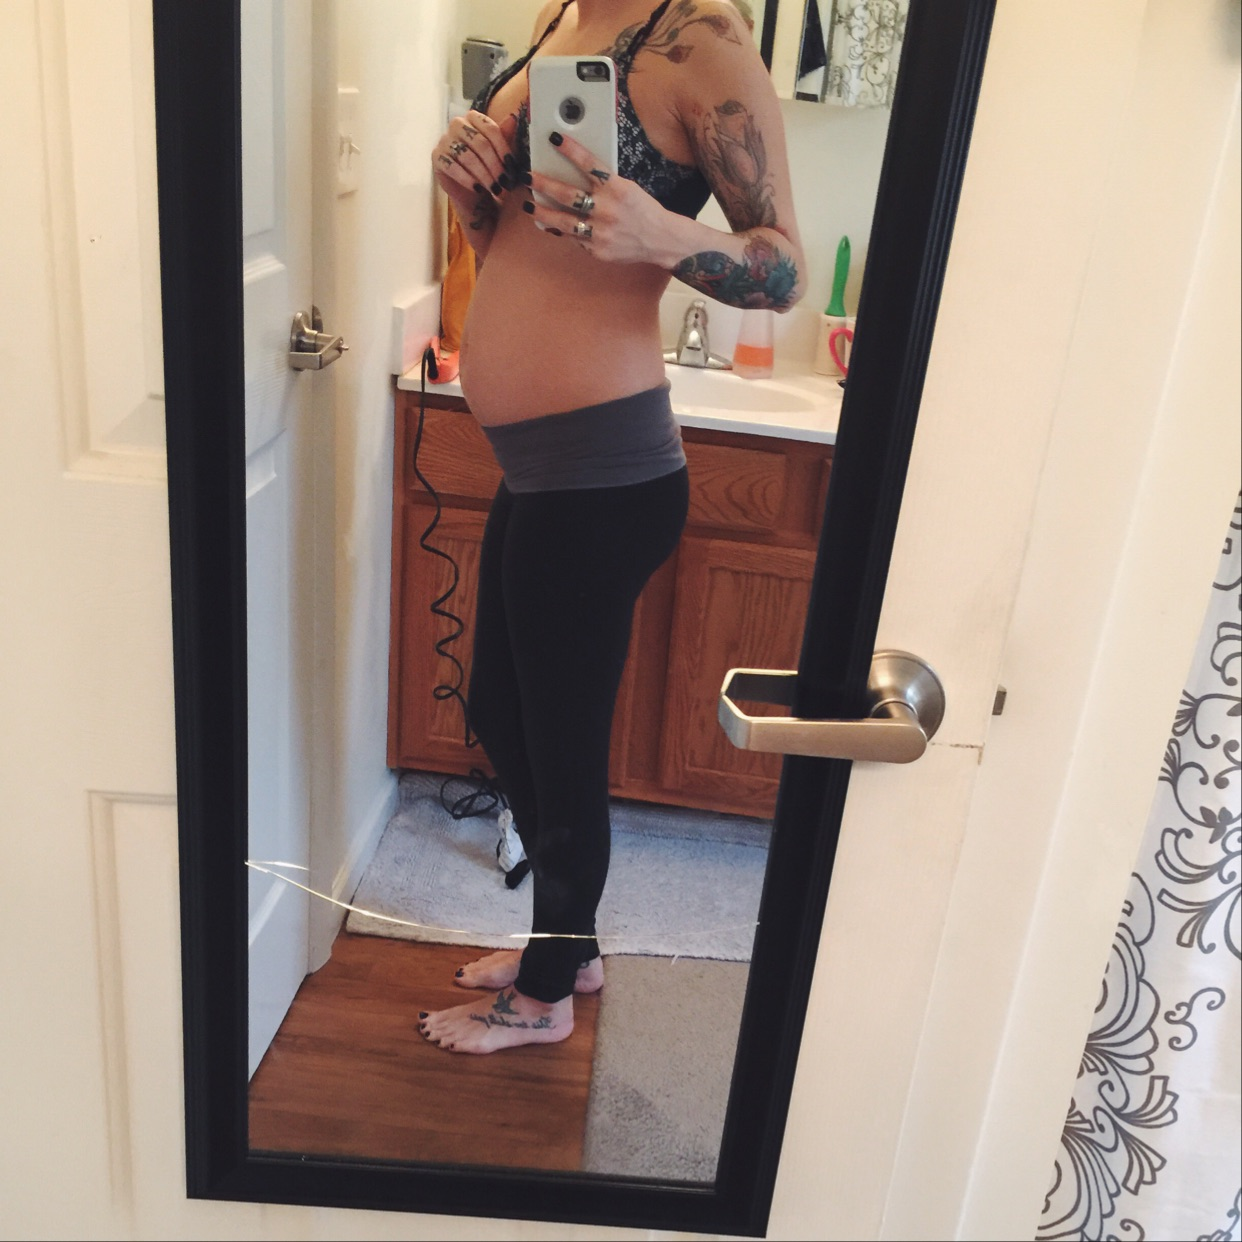 14 weeks! Starting to feel a little less bloated and a